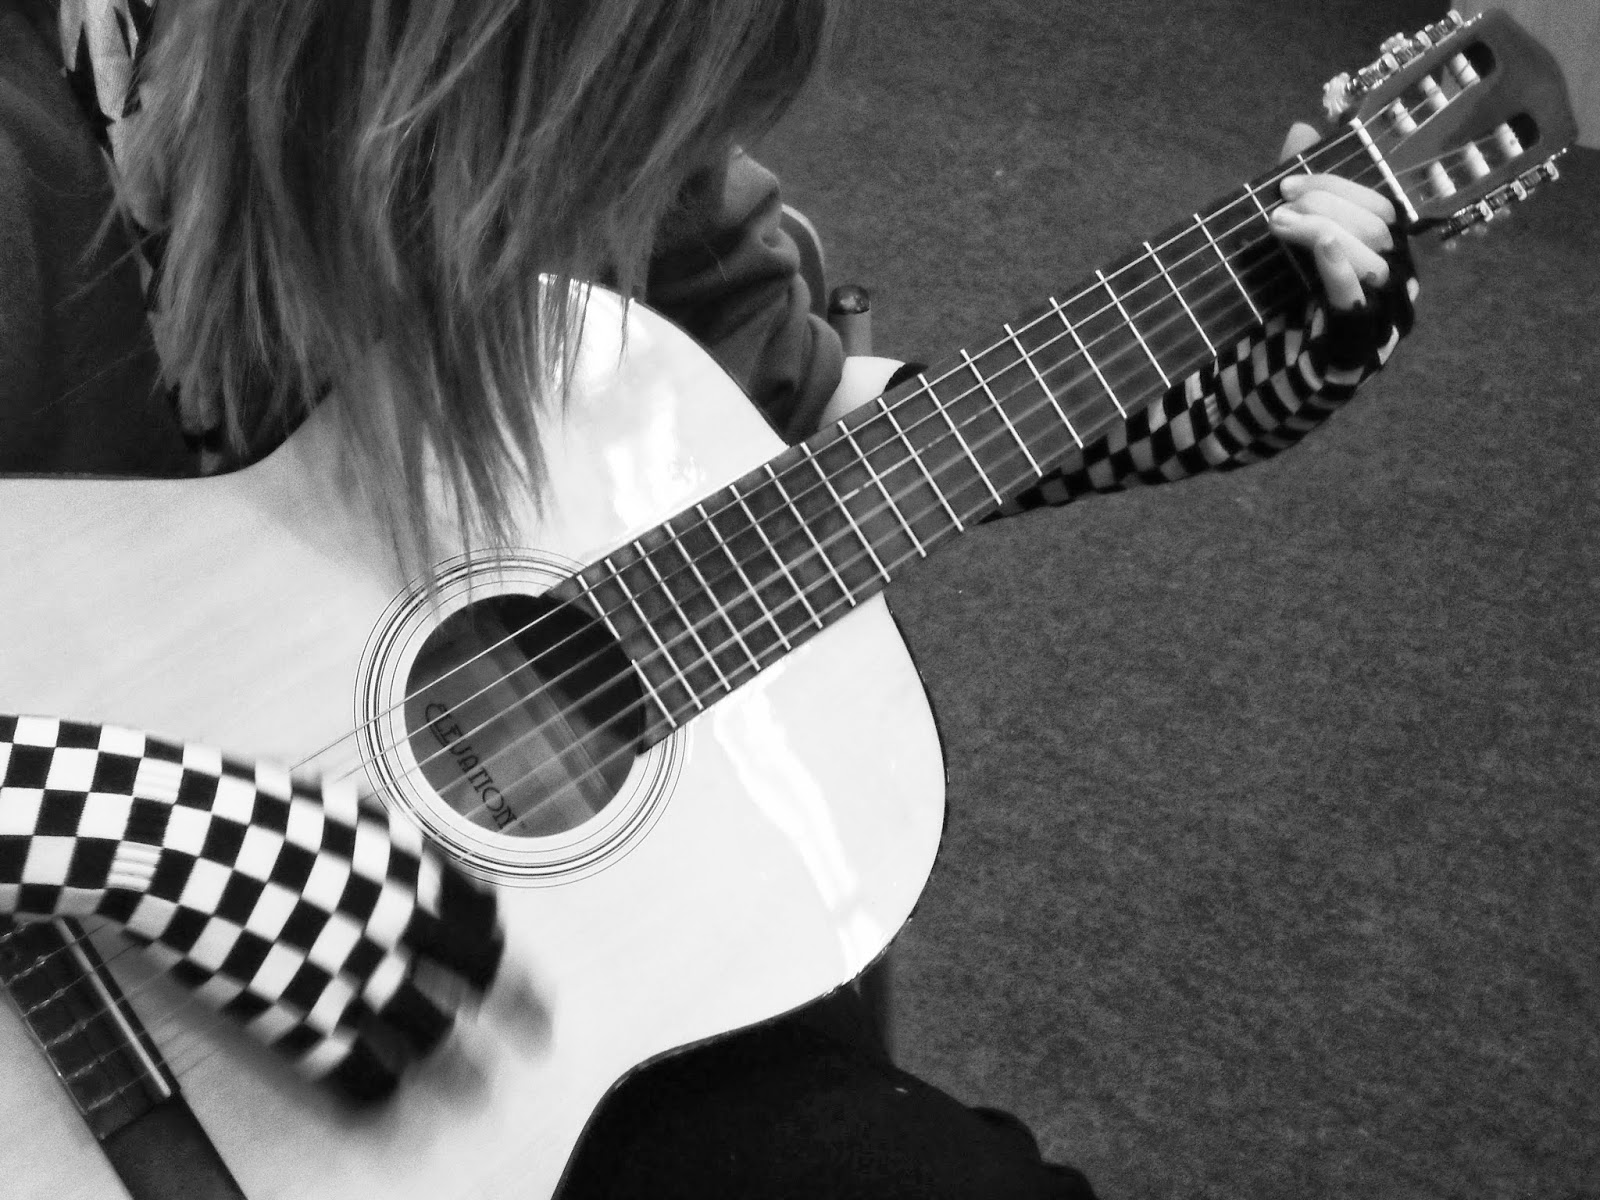 quotes girls playing electric guitars quotesgram. Black Bedroom Furniture Sets. Home Design Ideas